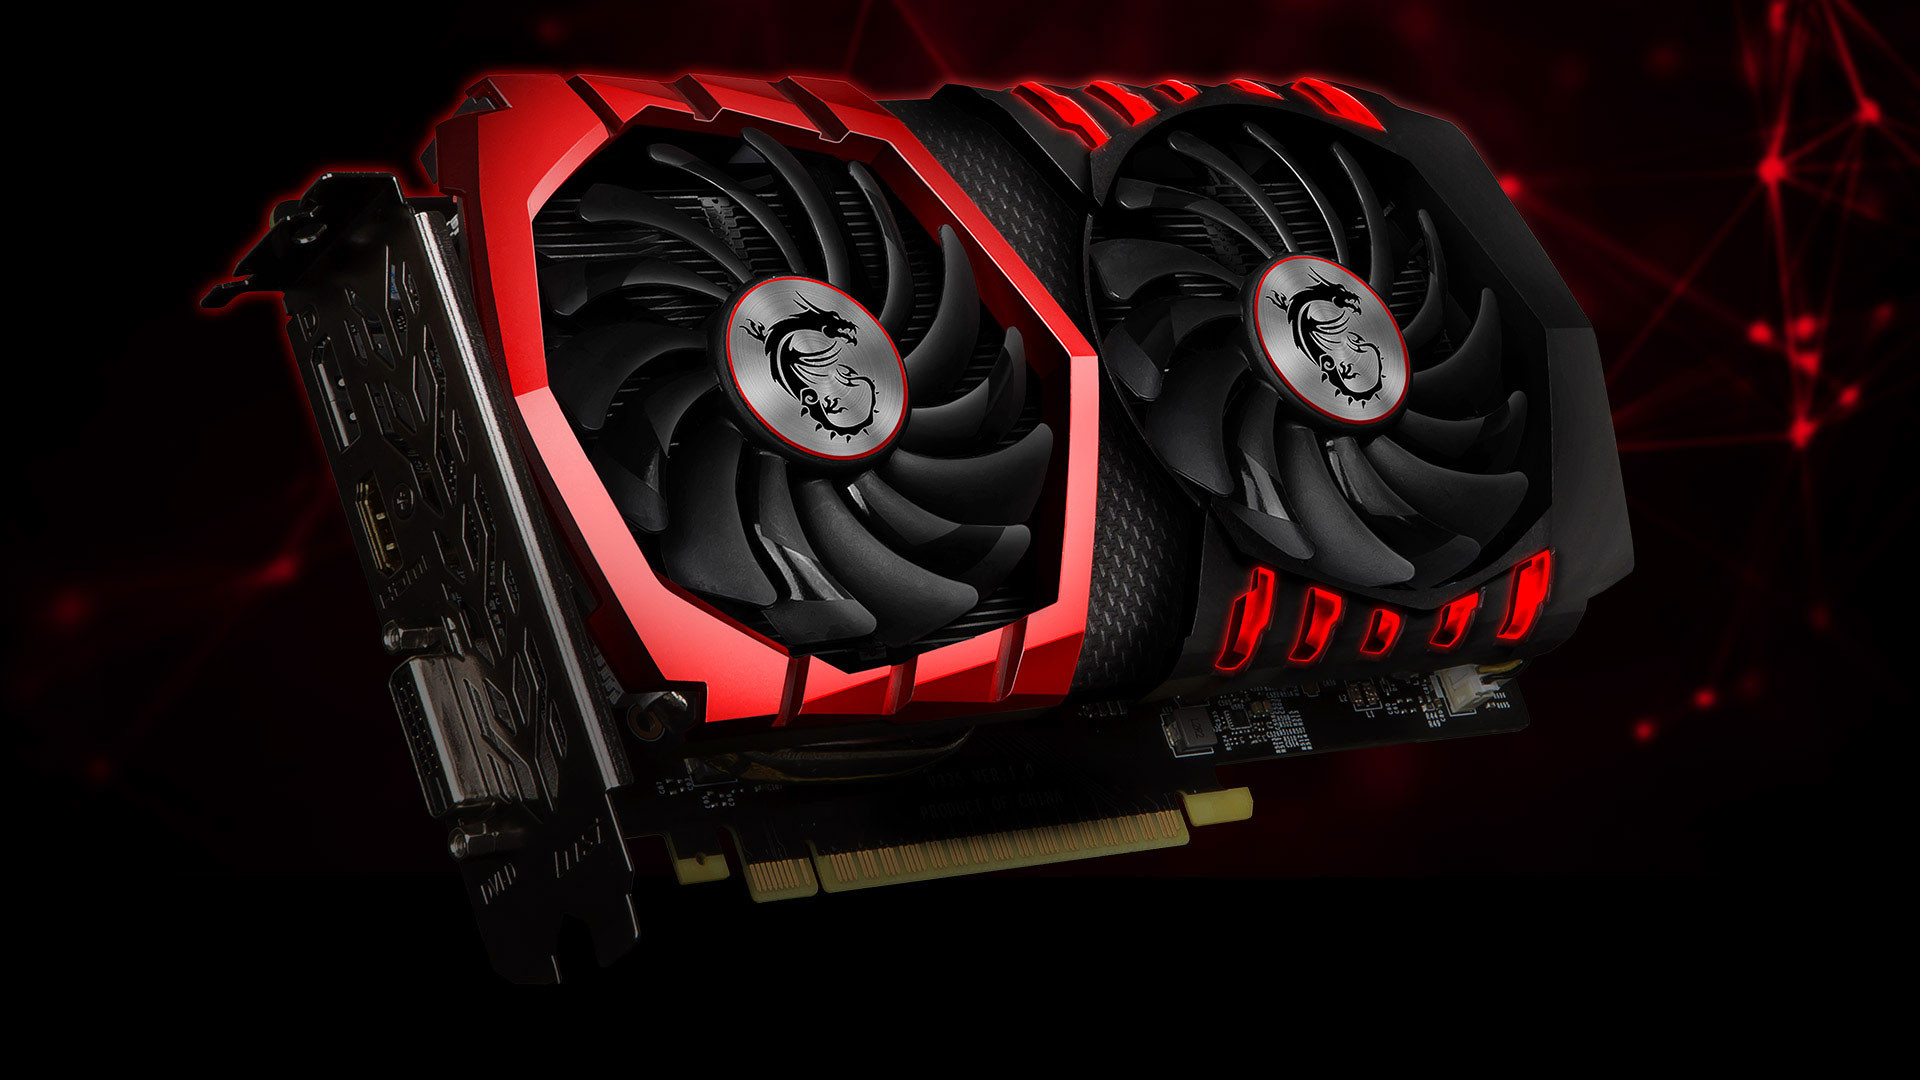 THE ULTIMATE GAMING GRAPHICS CARD